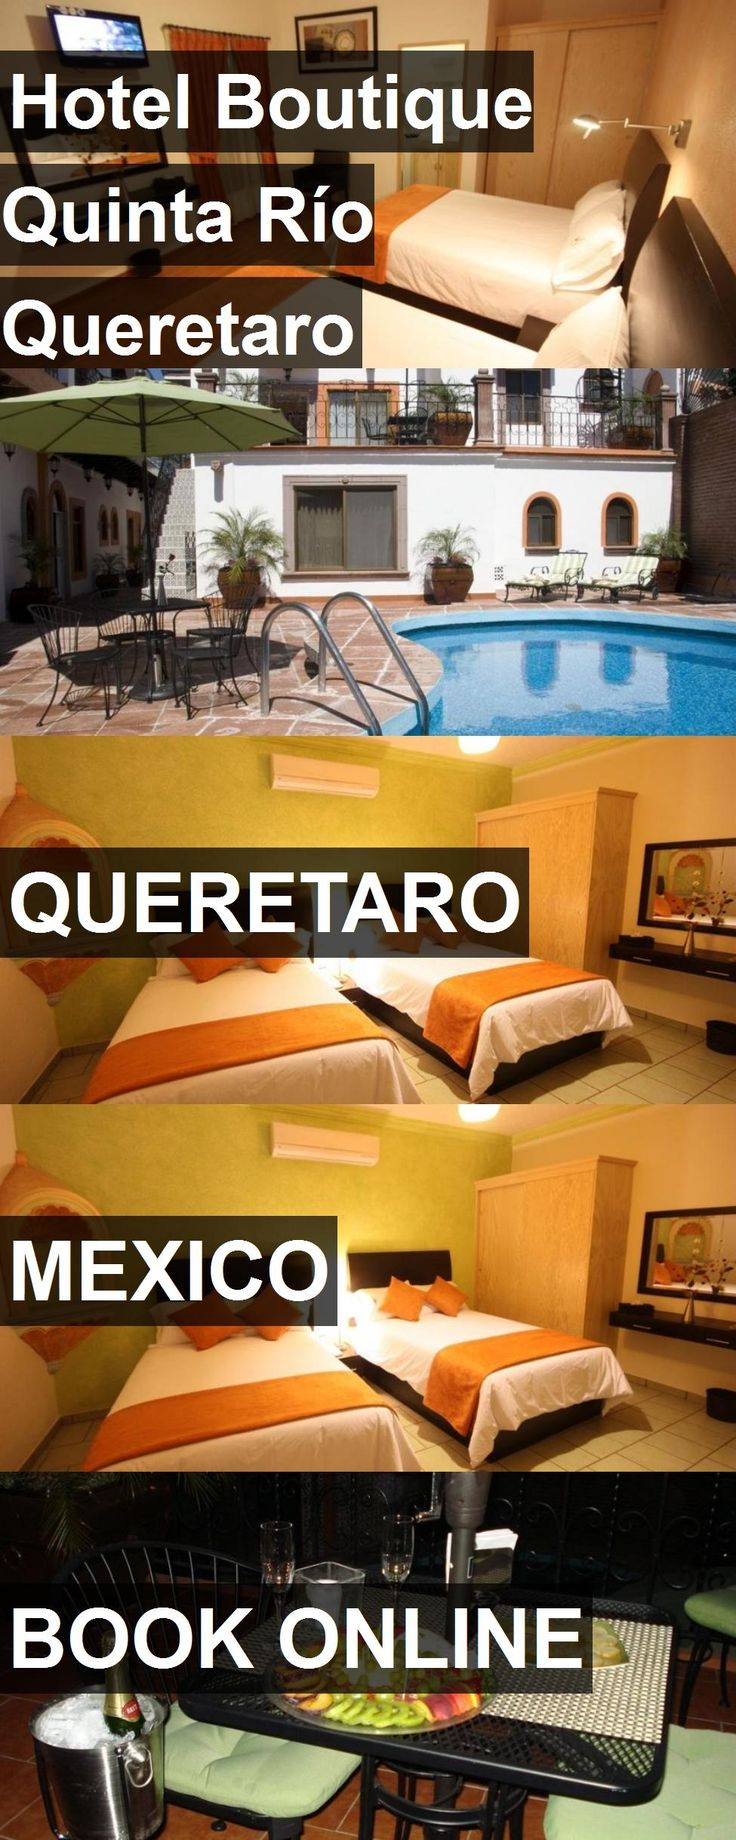 Hotel Hotel Boutique Quinta Río Queretaro in Queretaro, Mexico. For more information, photos, reviews and best prices please follow the link. #Mexico #Queretaro #HotelBoutiqueQuintaRíoQueretaro #hotel #travel #vacation